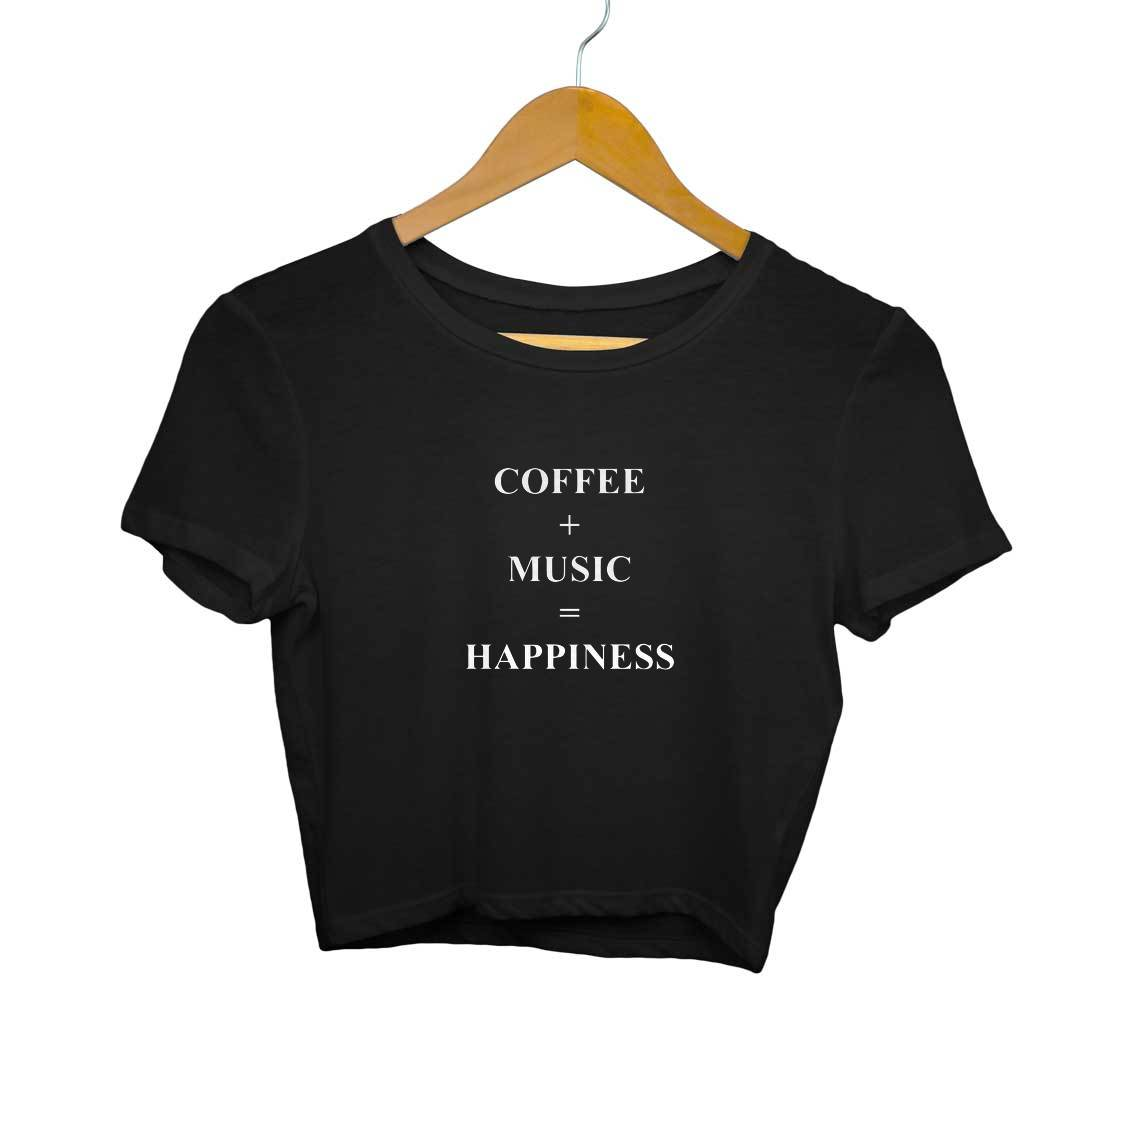 Coffee + Music = Happiness Crop Tops